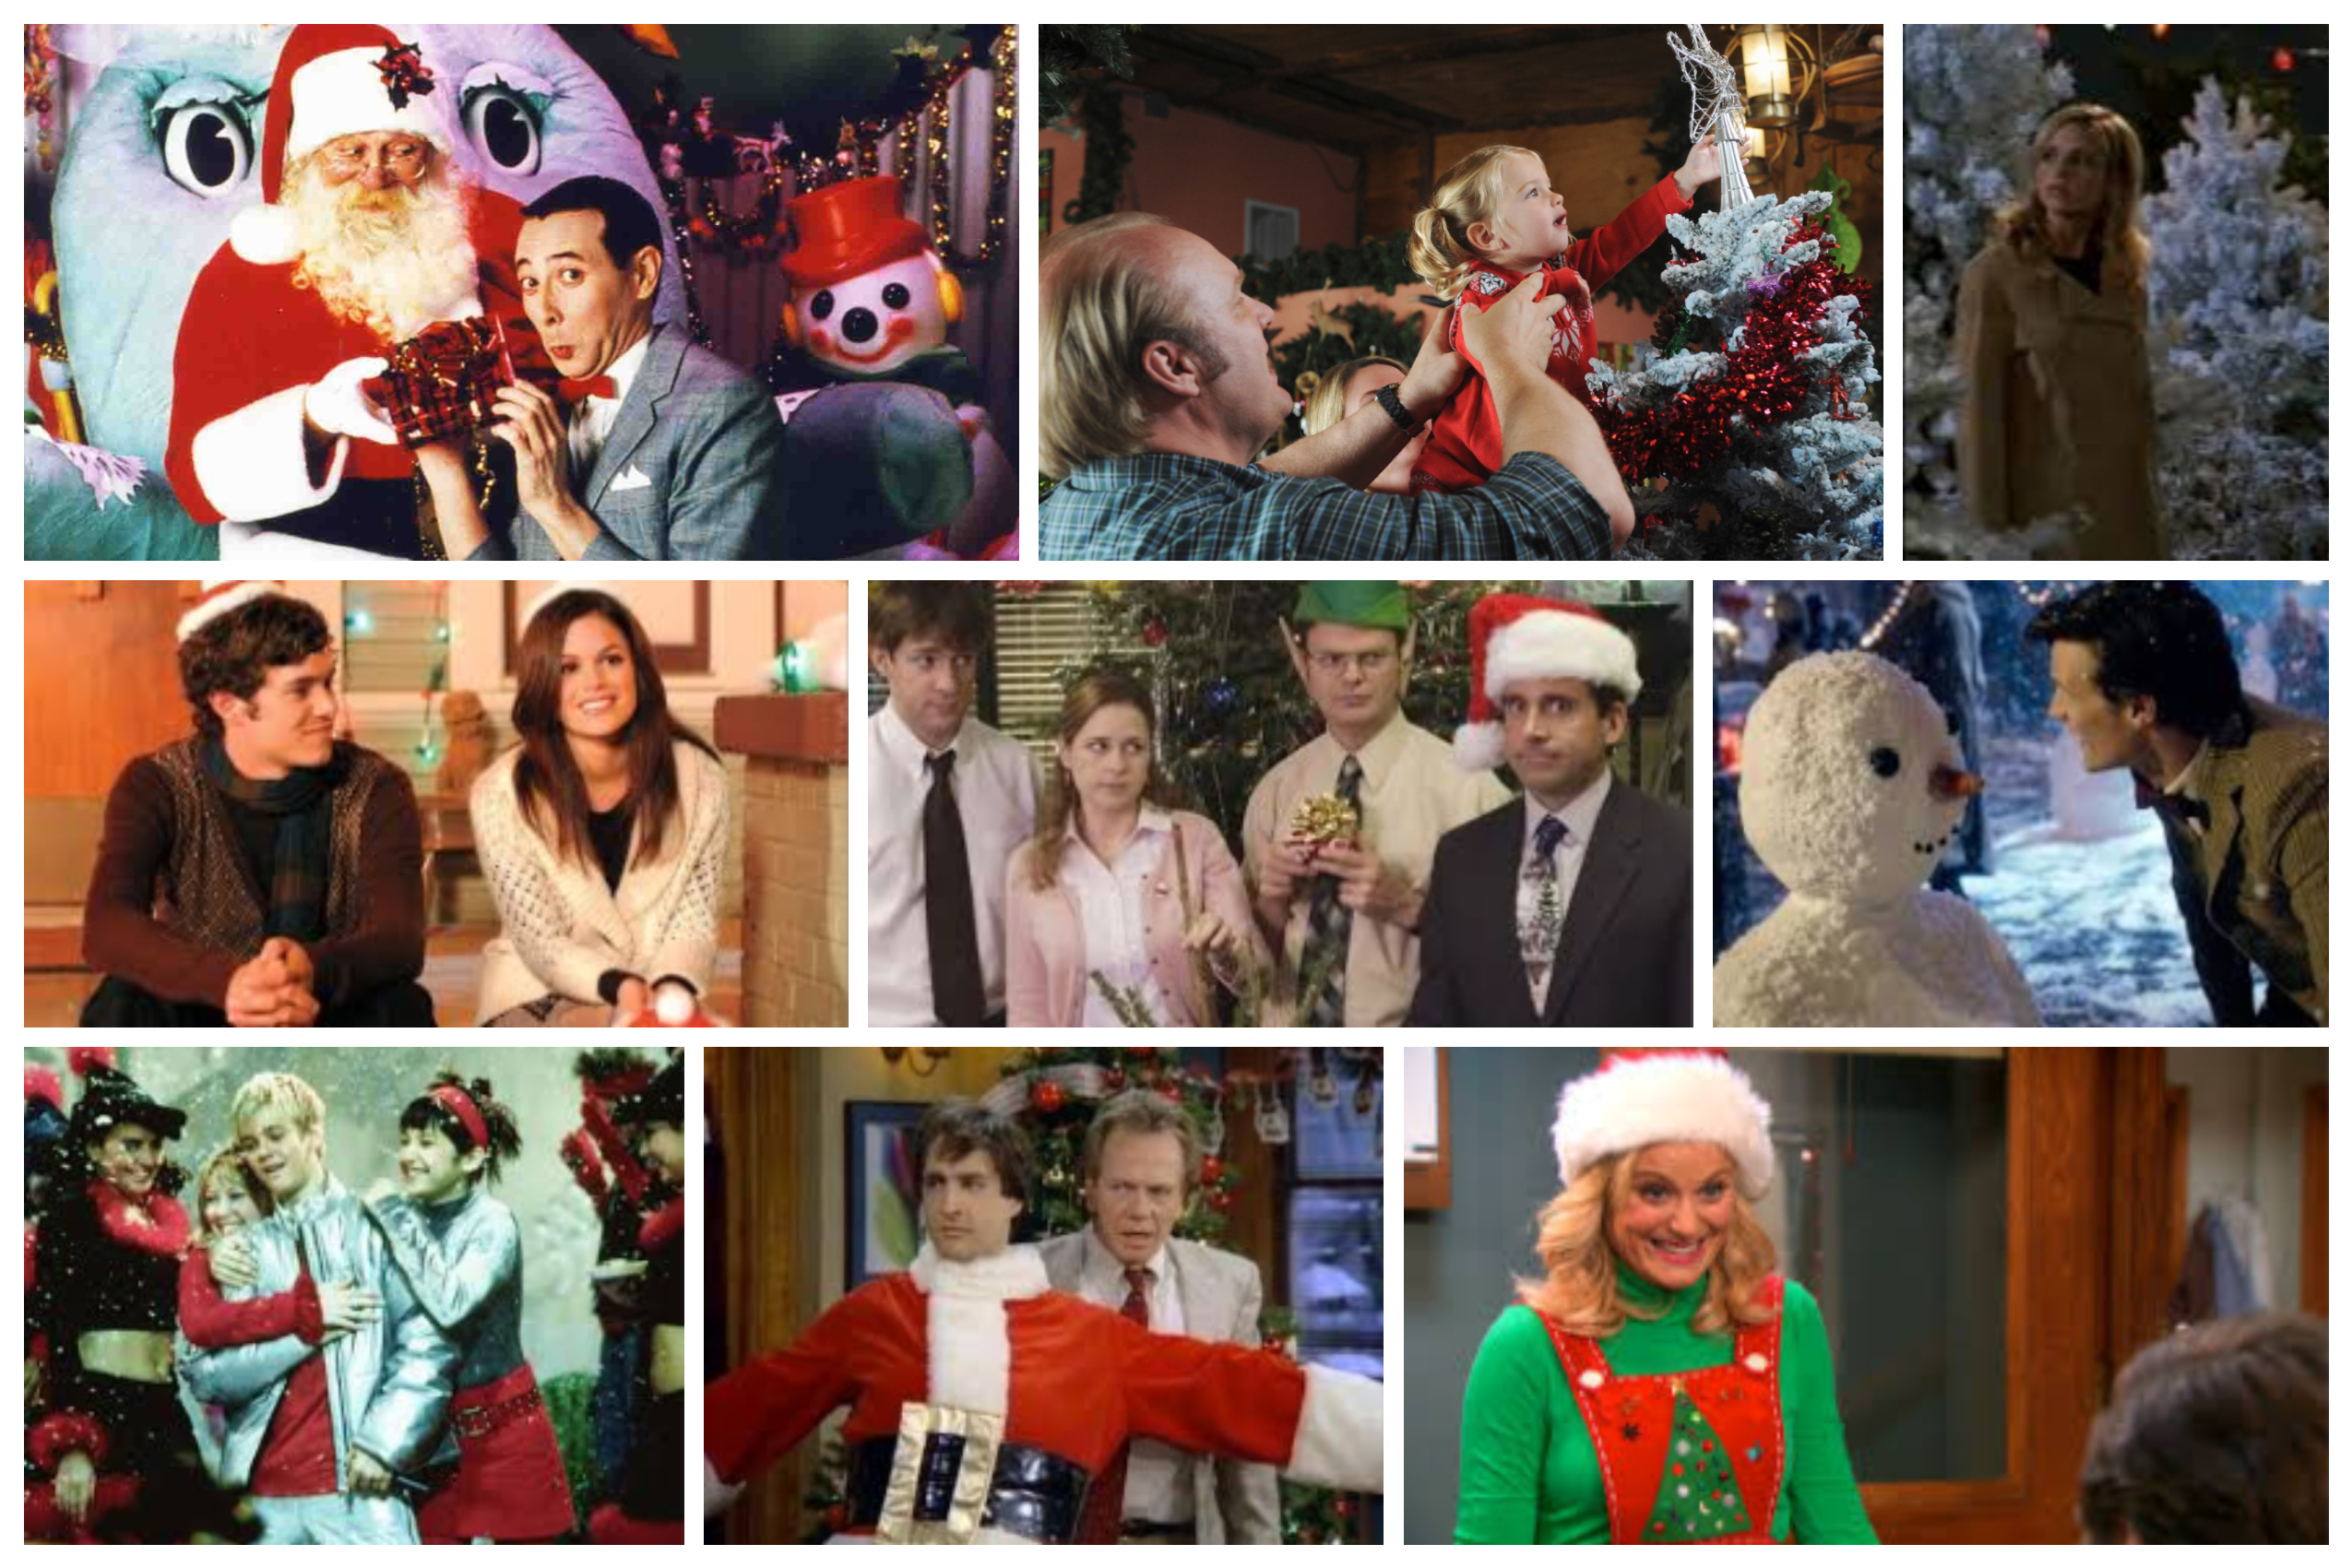 The LC's Favorite Holiday Episodes and TV Specials